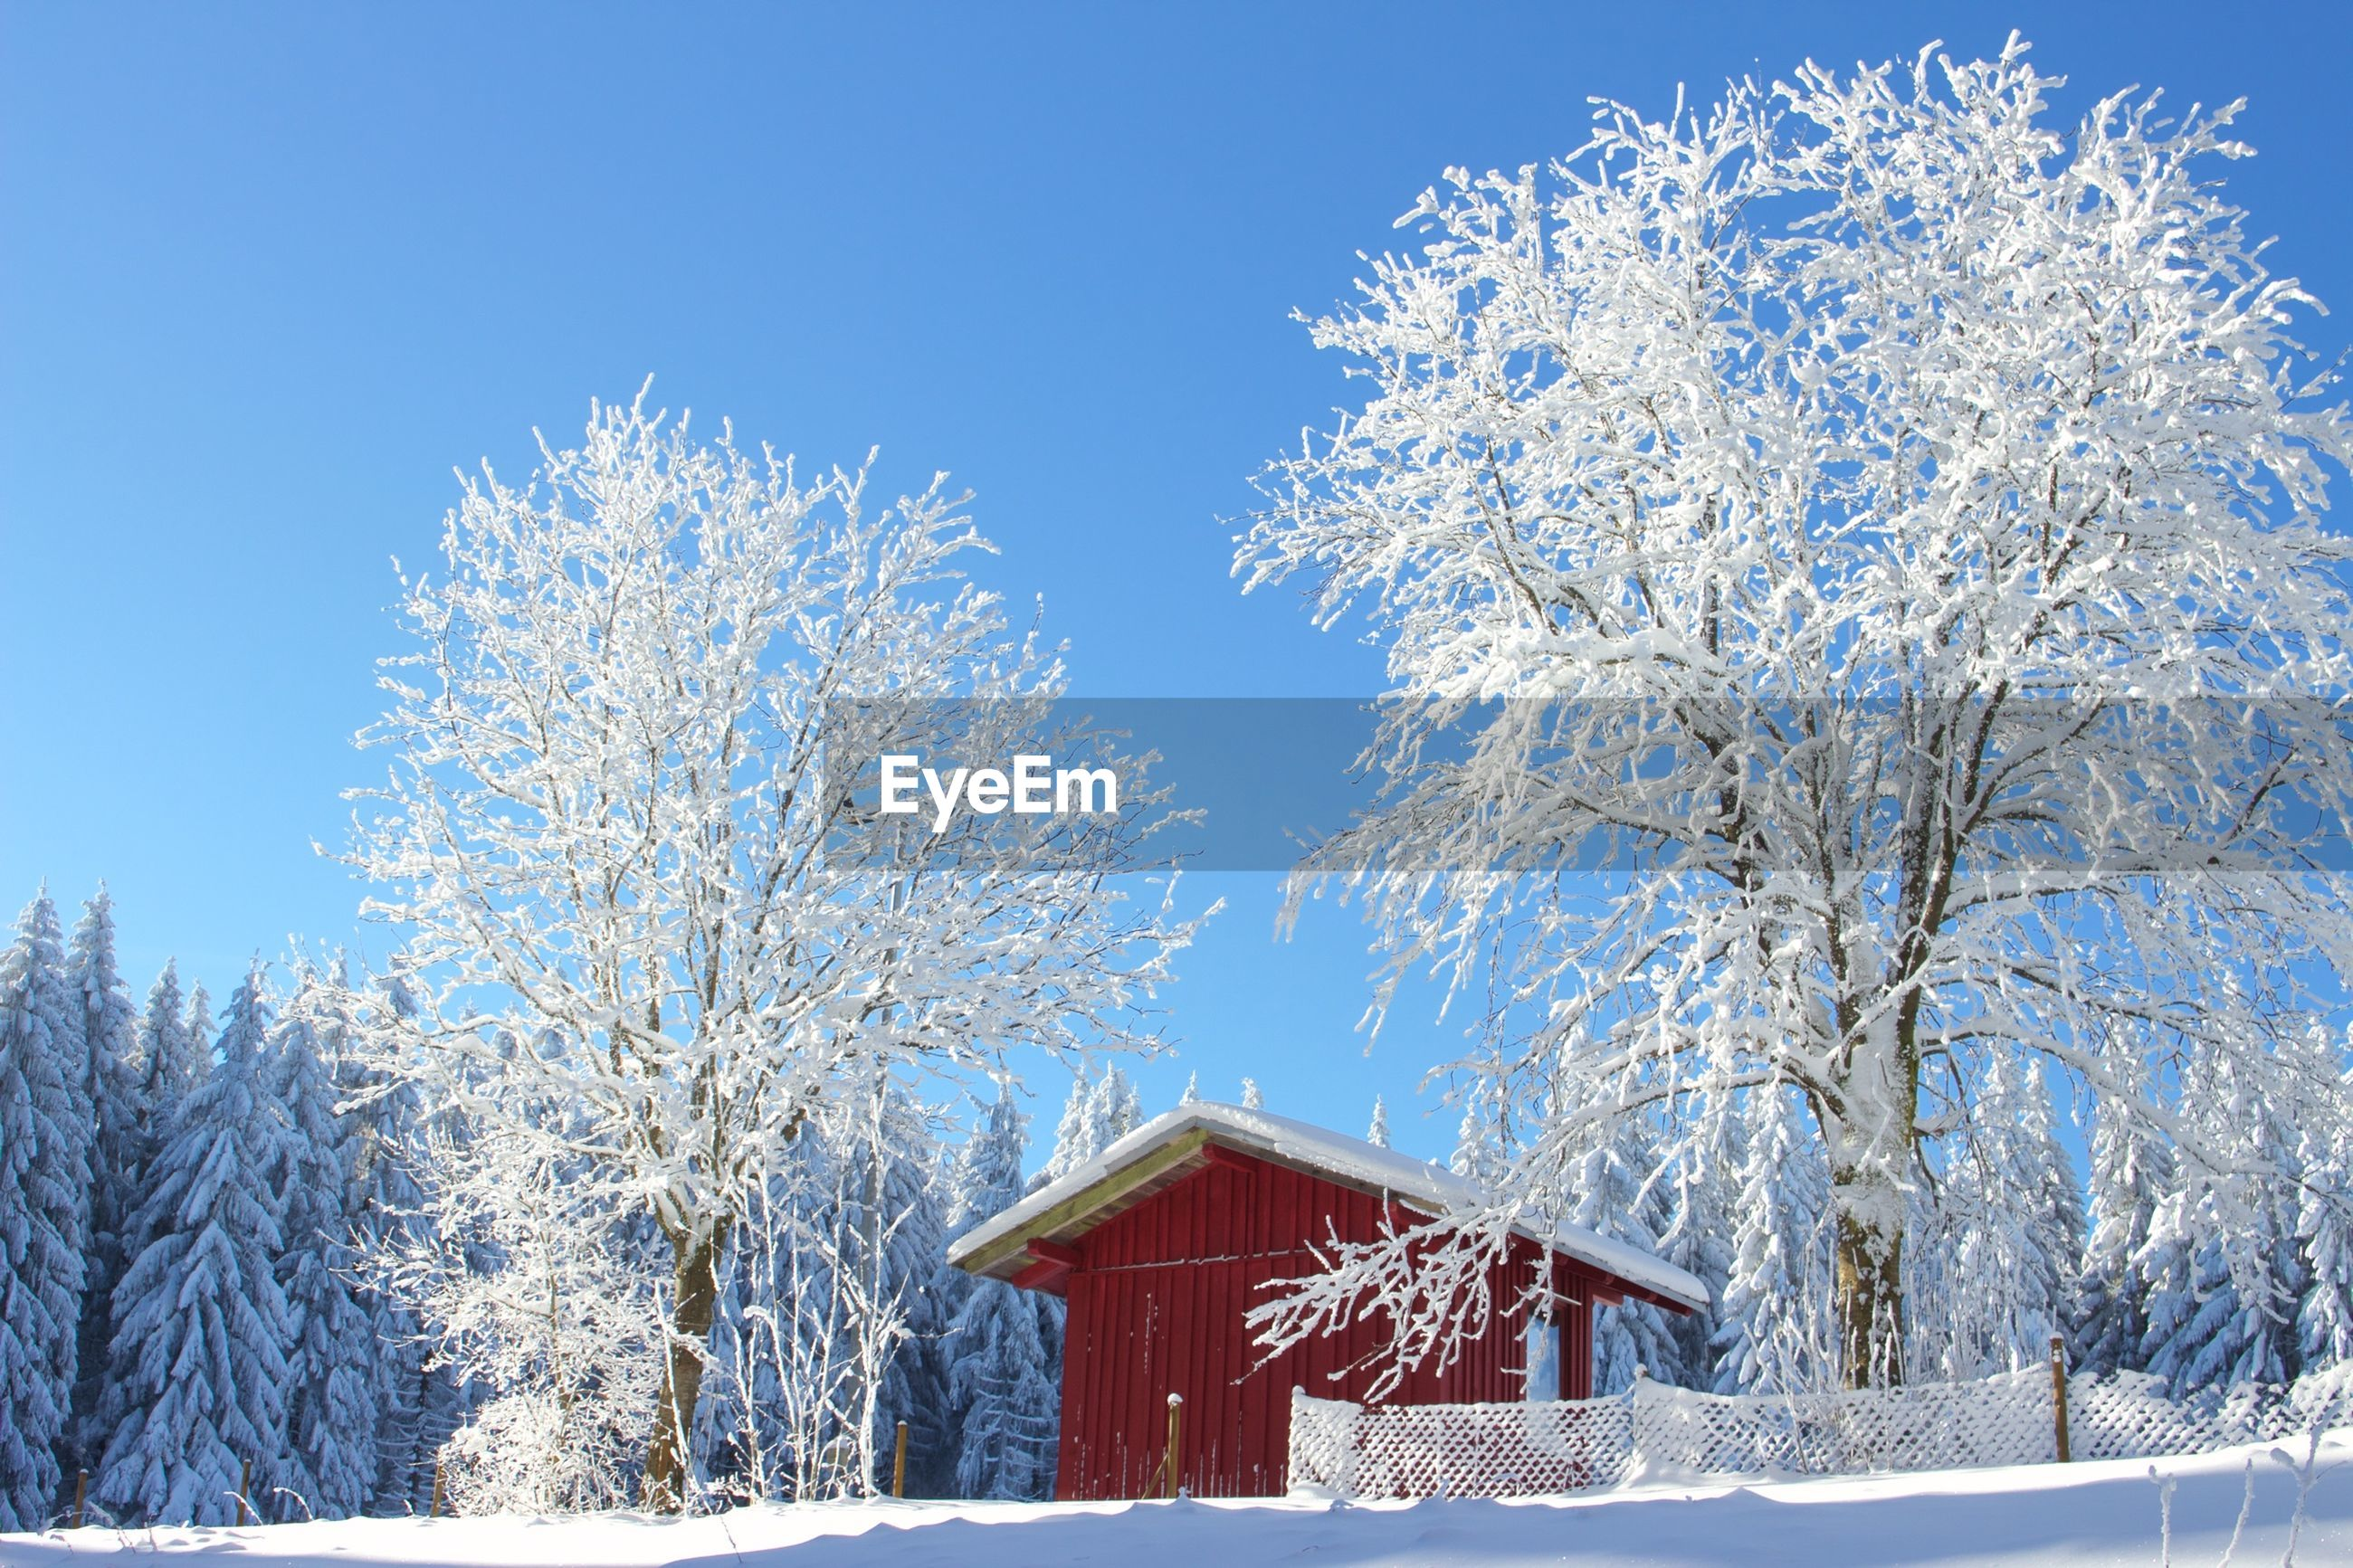 House and trees on snow covered landscape